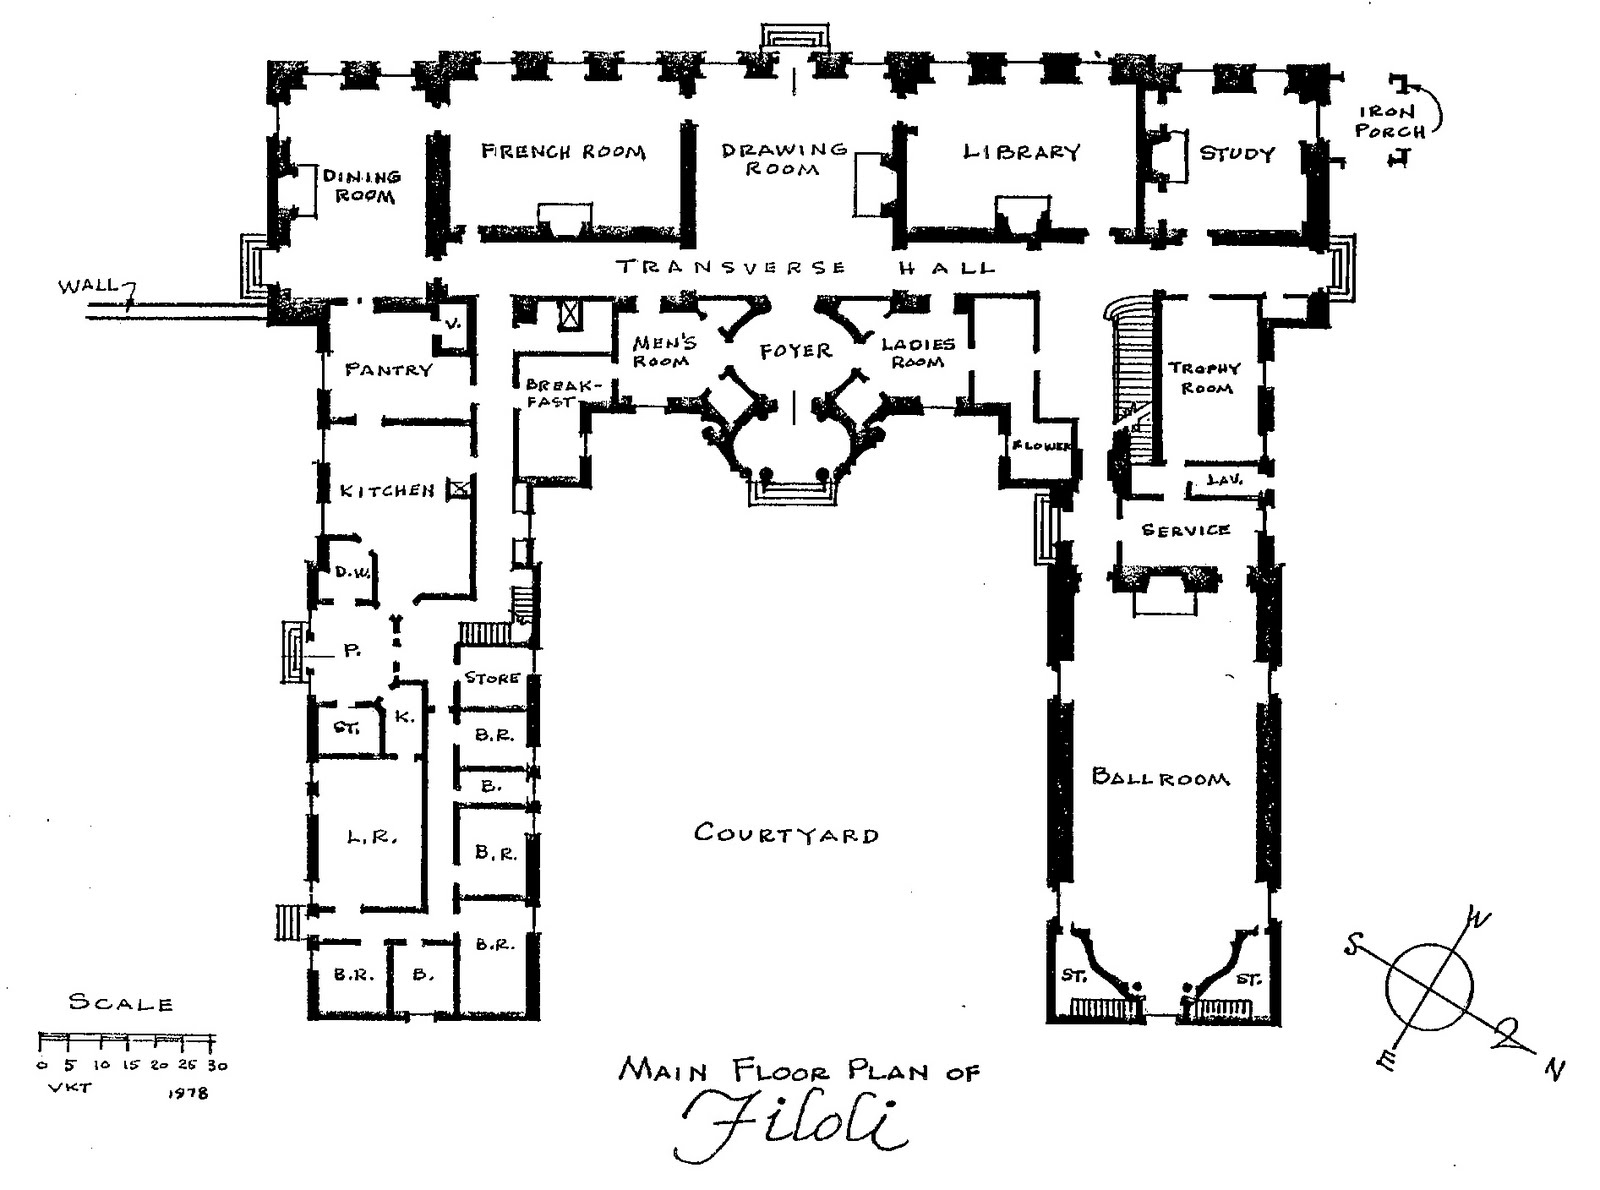 Filoli Floorplan on 2012 11 01 archive